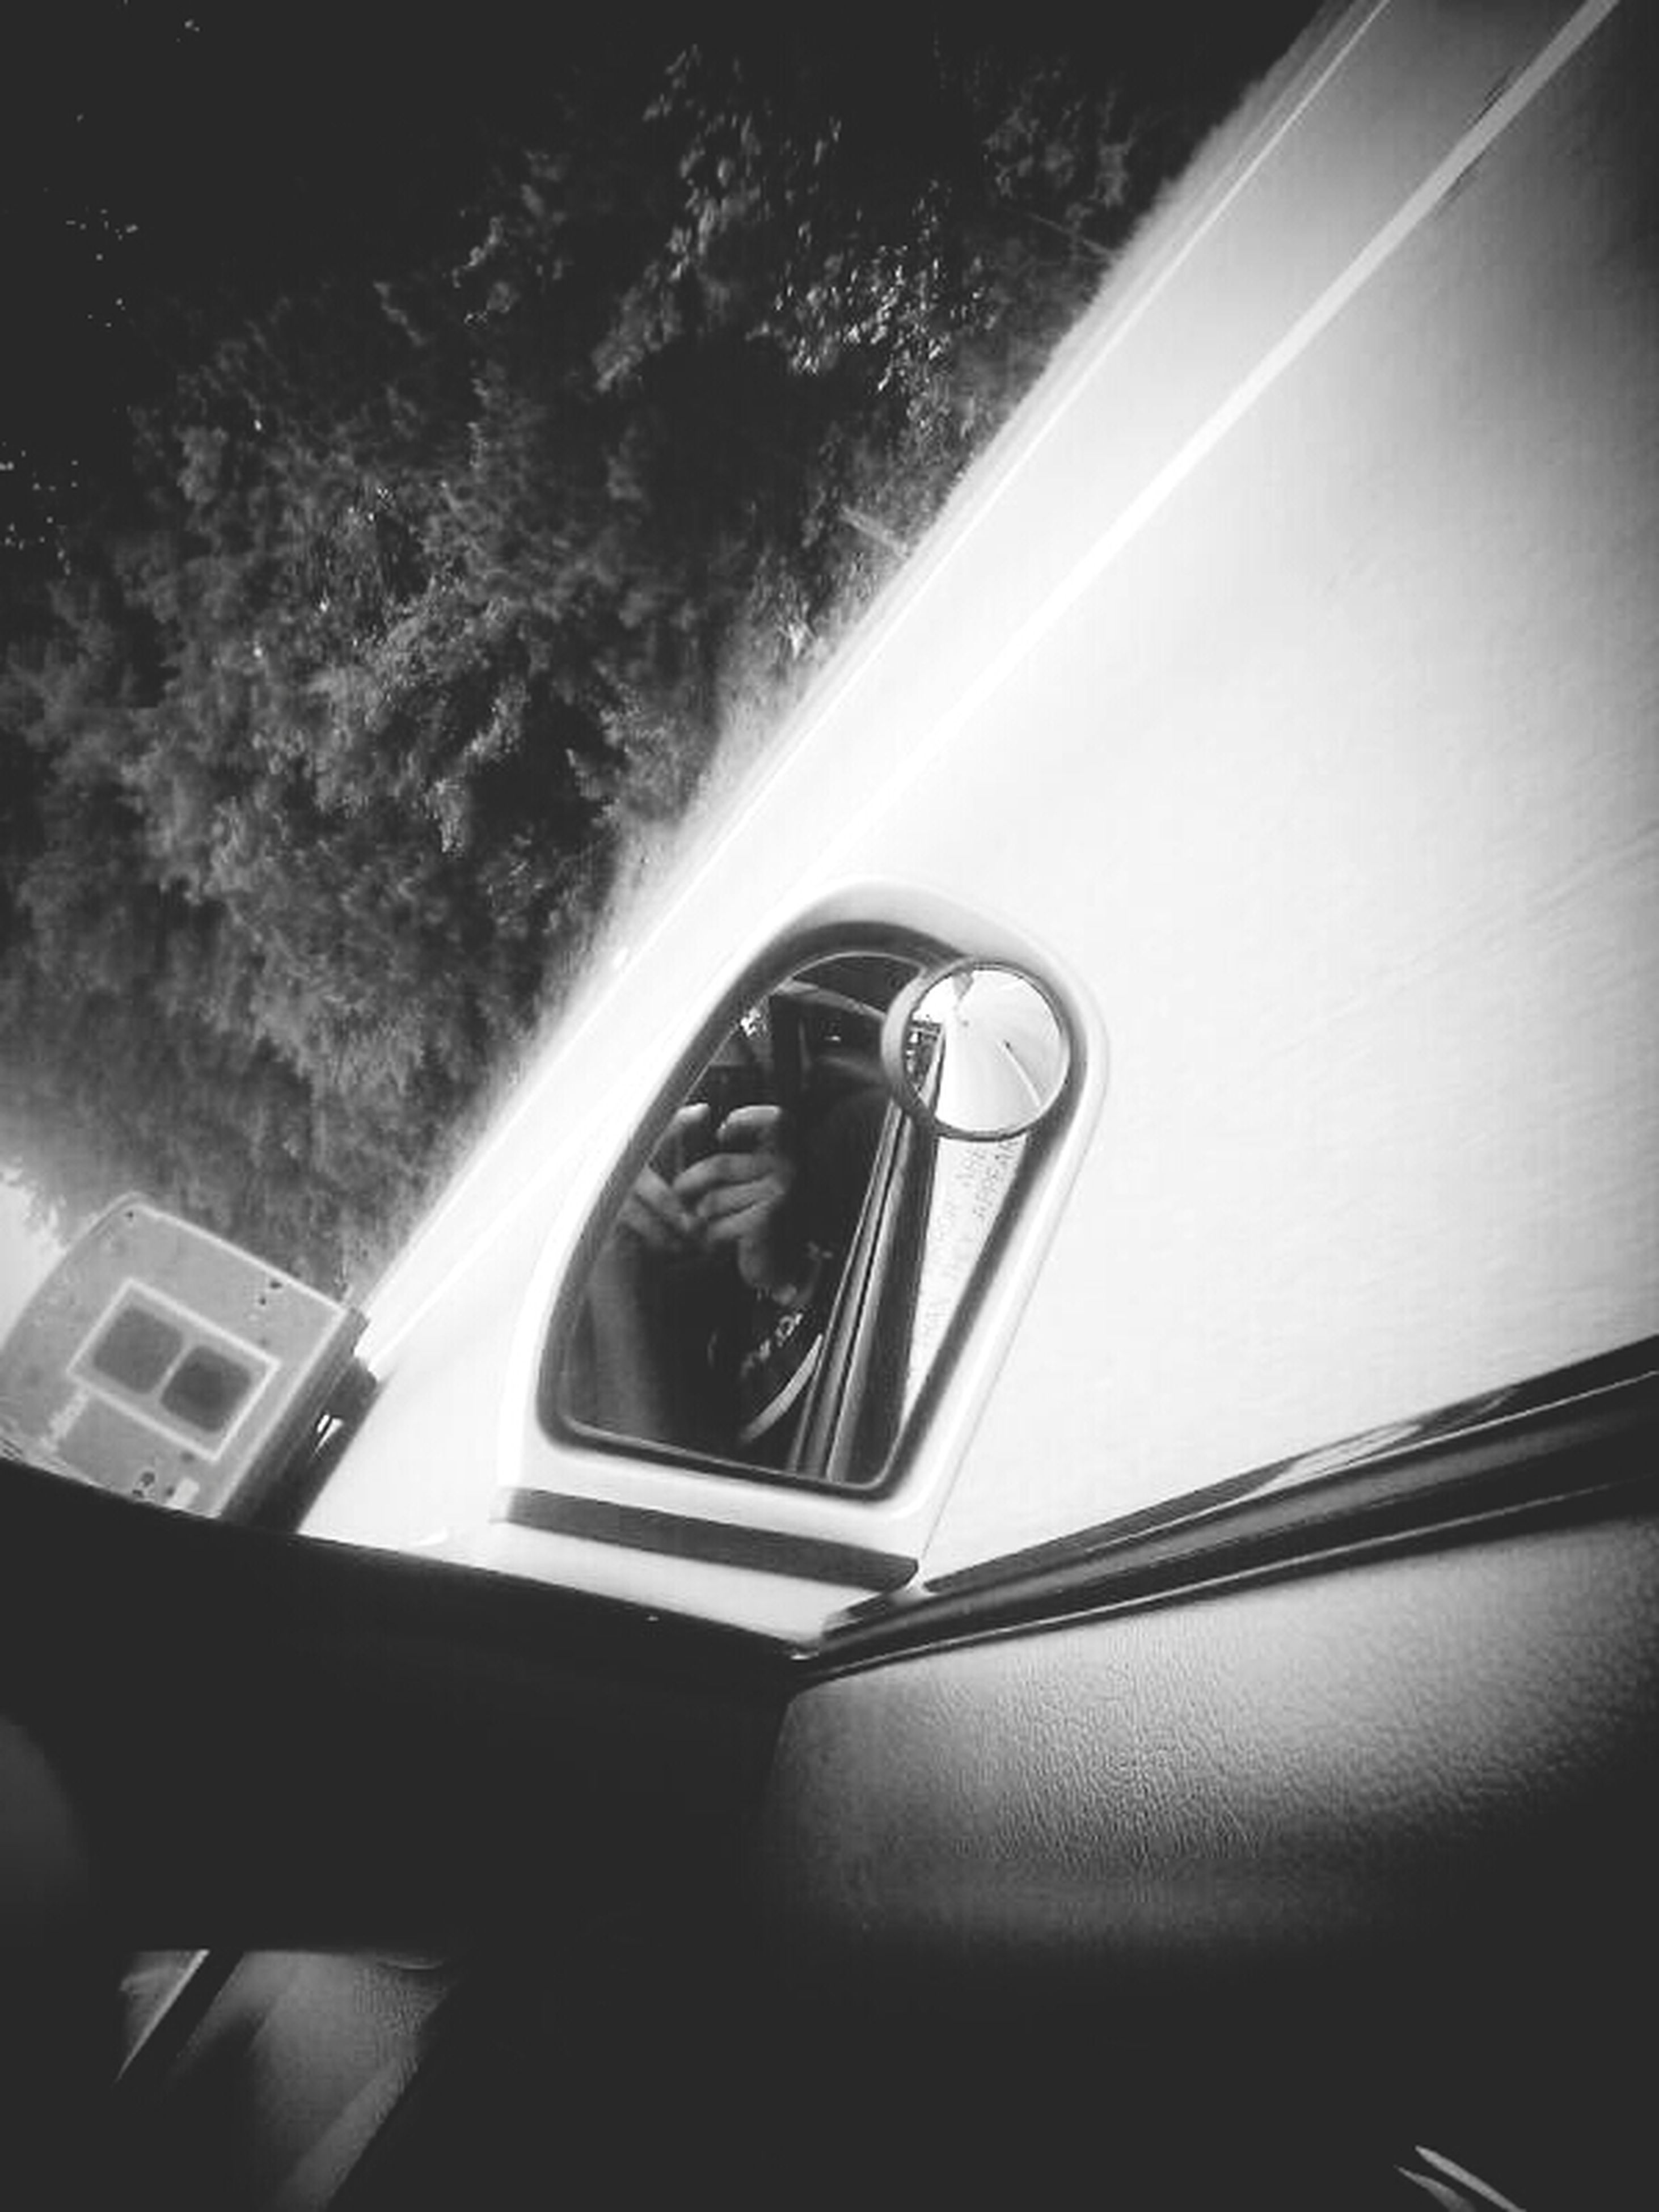 transportation, mode of transport, land vehicle, car, part of, cropped, reflection, glass - material, no people, close-up, window, day, side-view mirror, on the move, high angle view, outdoors, road, travel, vehicle interior, sunlight